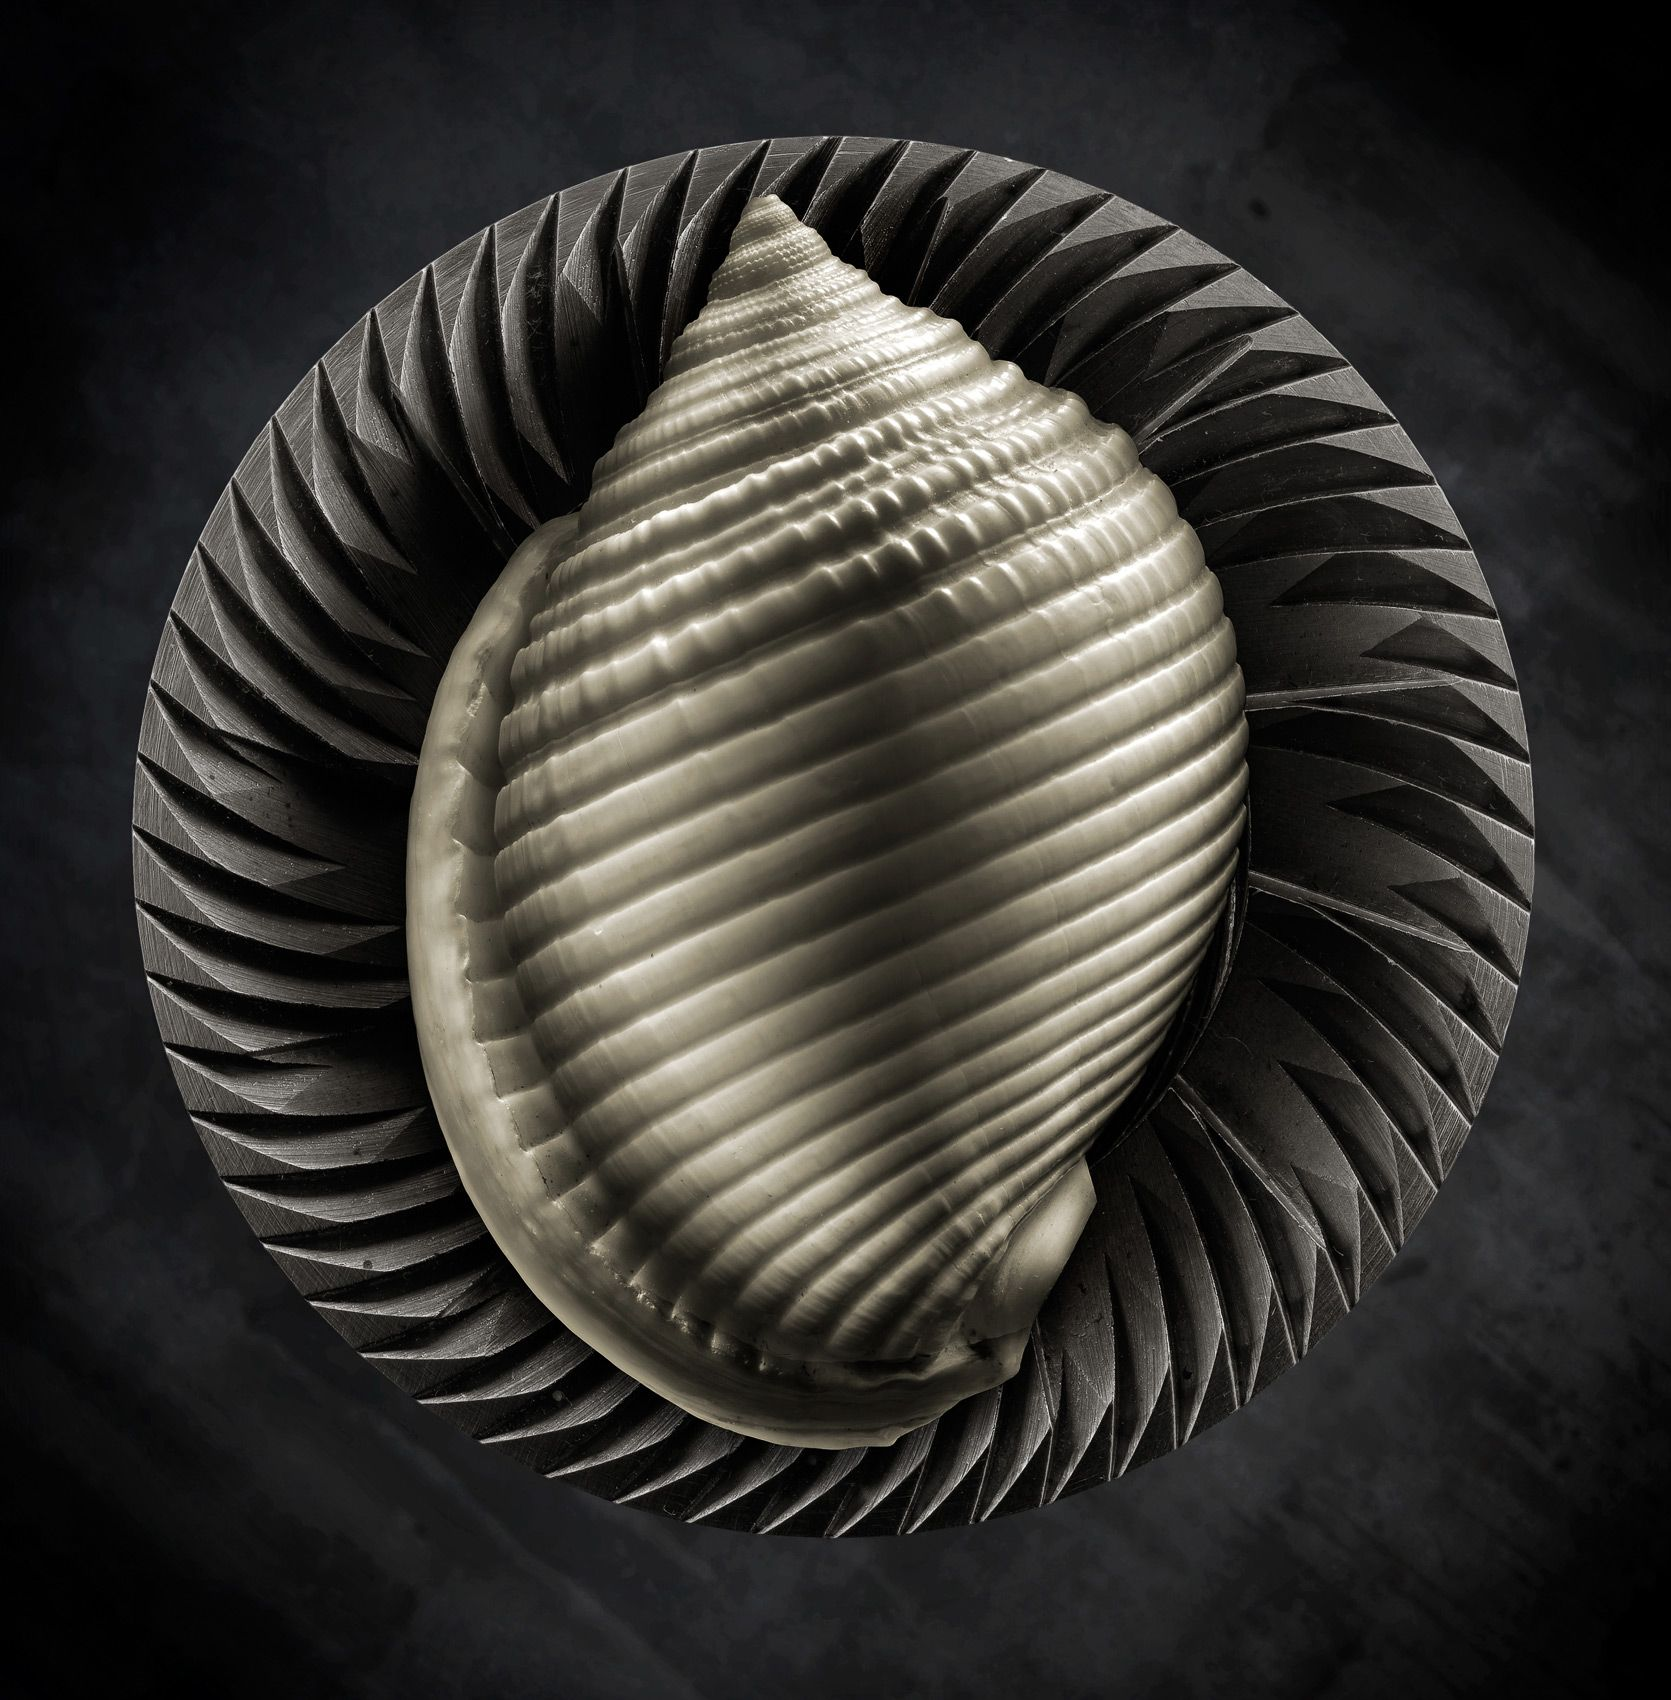 Shell Study #3 by Harold Ross